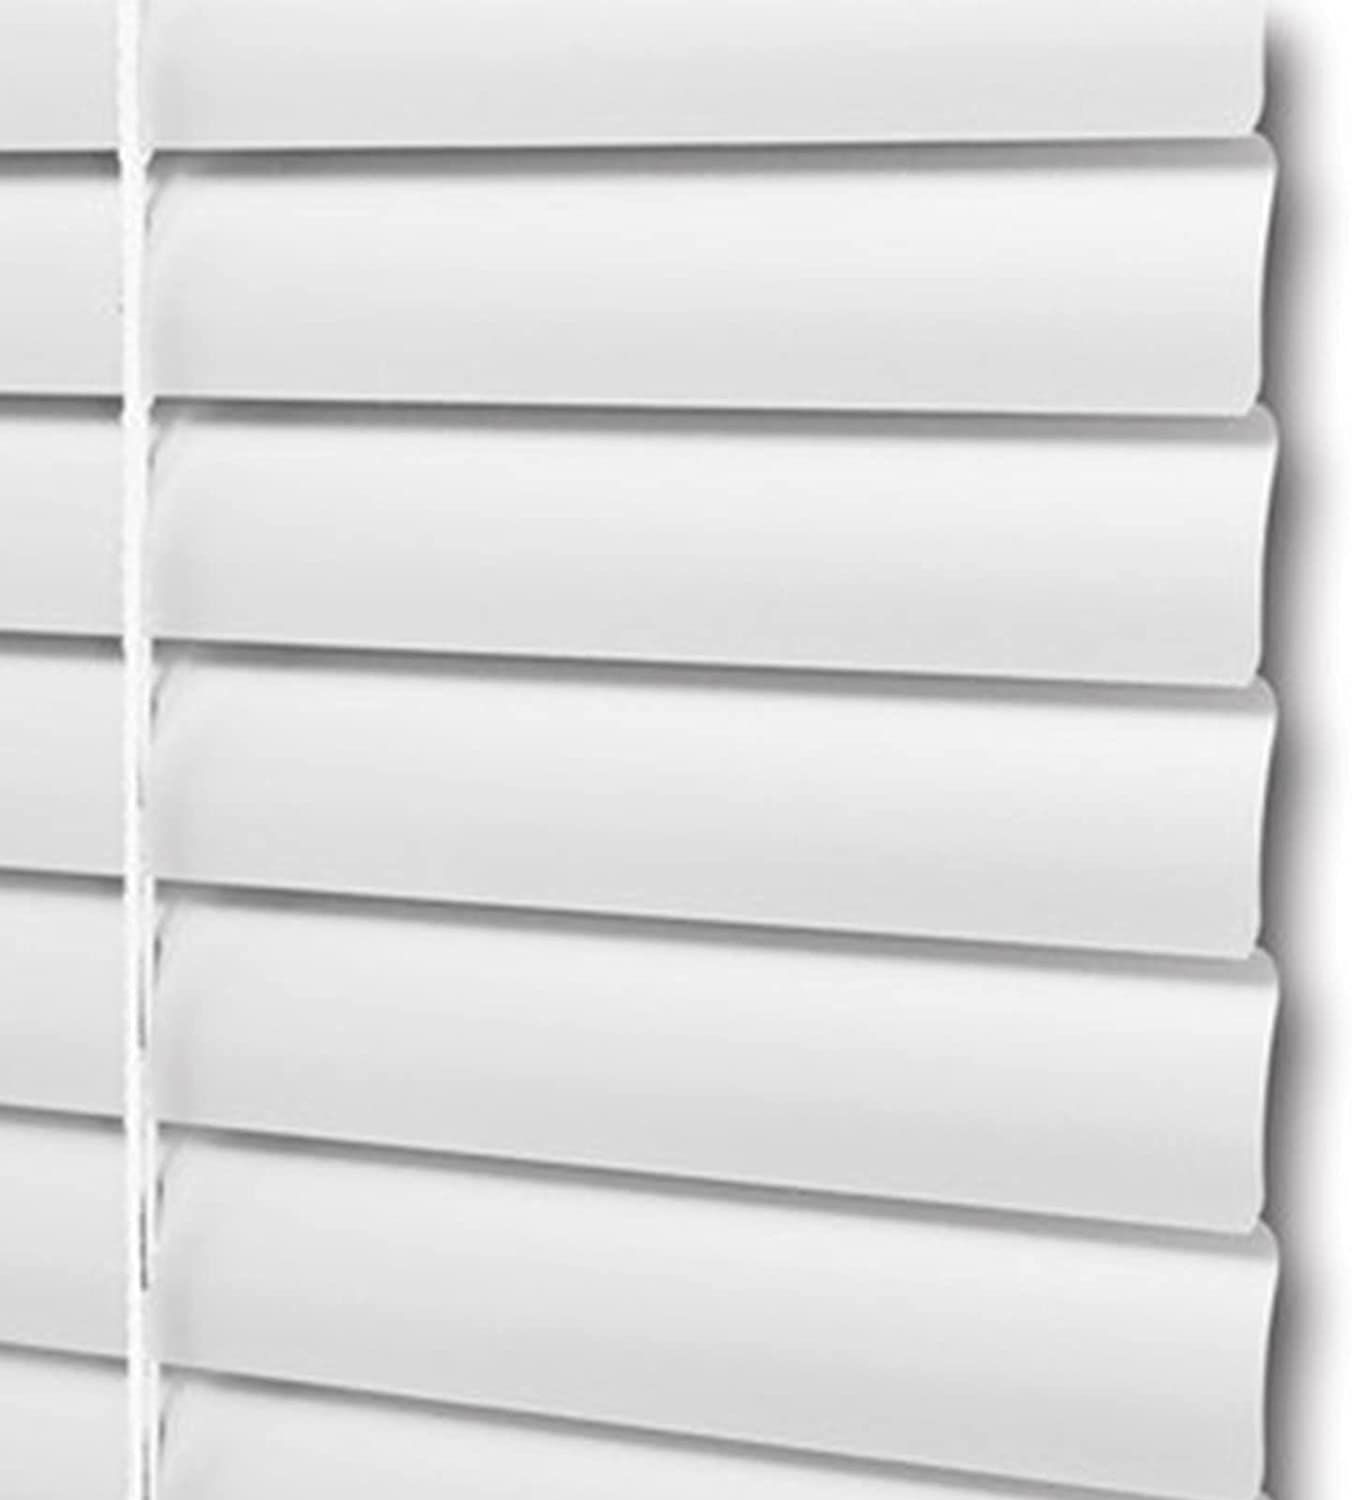 Gwendolyn Small Window Max 44% OFF Opening large release sale Shade Aluminum Sun Outdoor Blinds